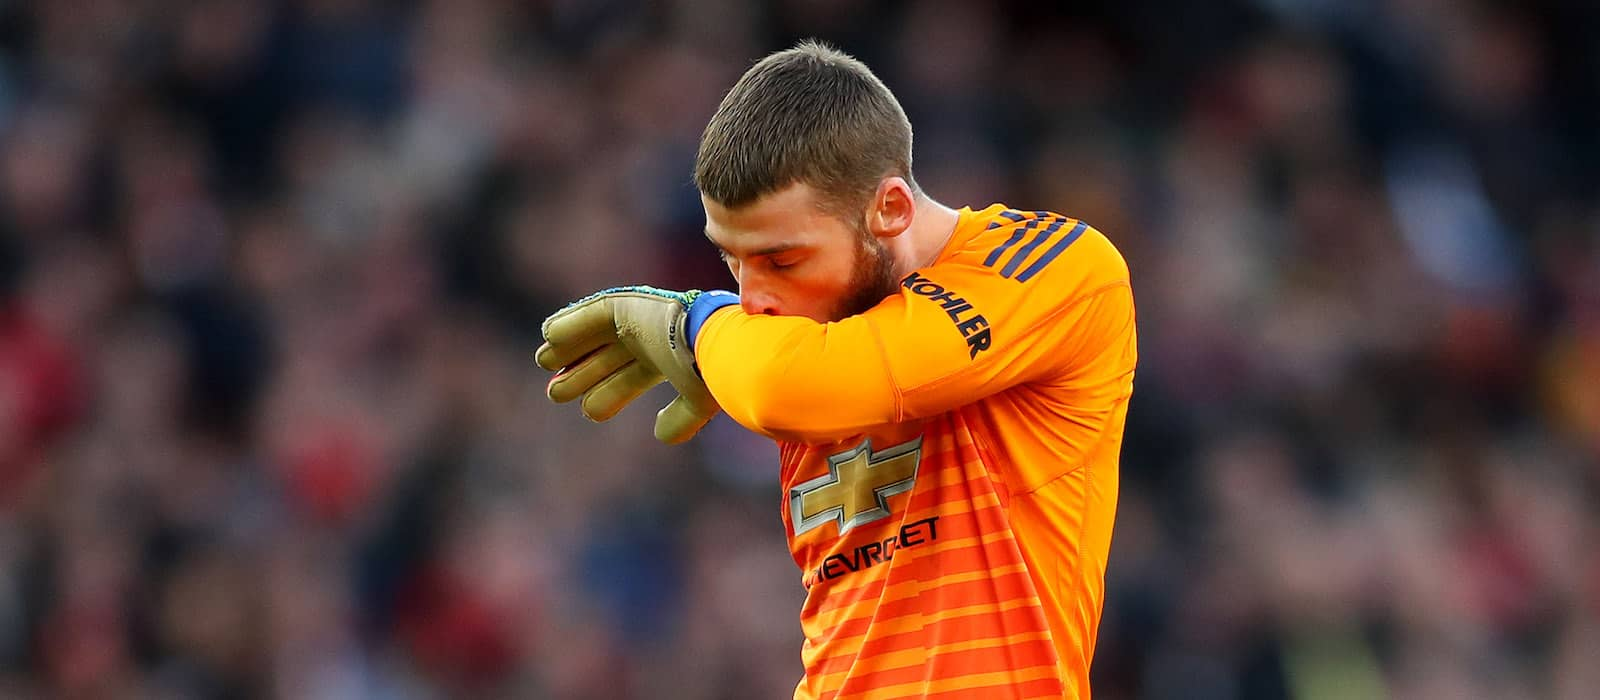 Manchester United hope for breakthrough with David de Gea: report